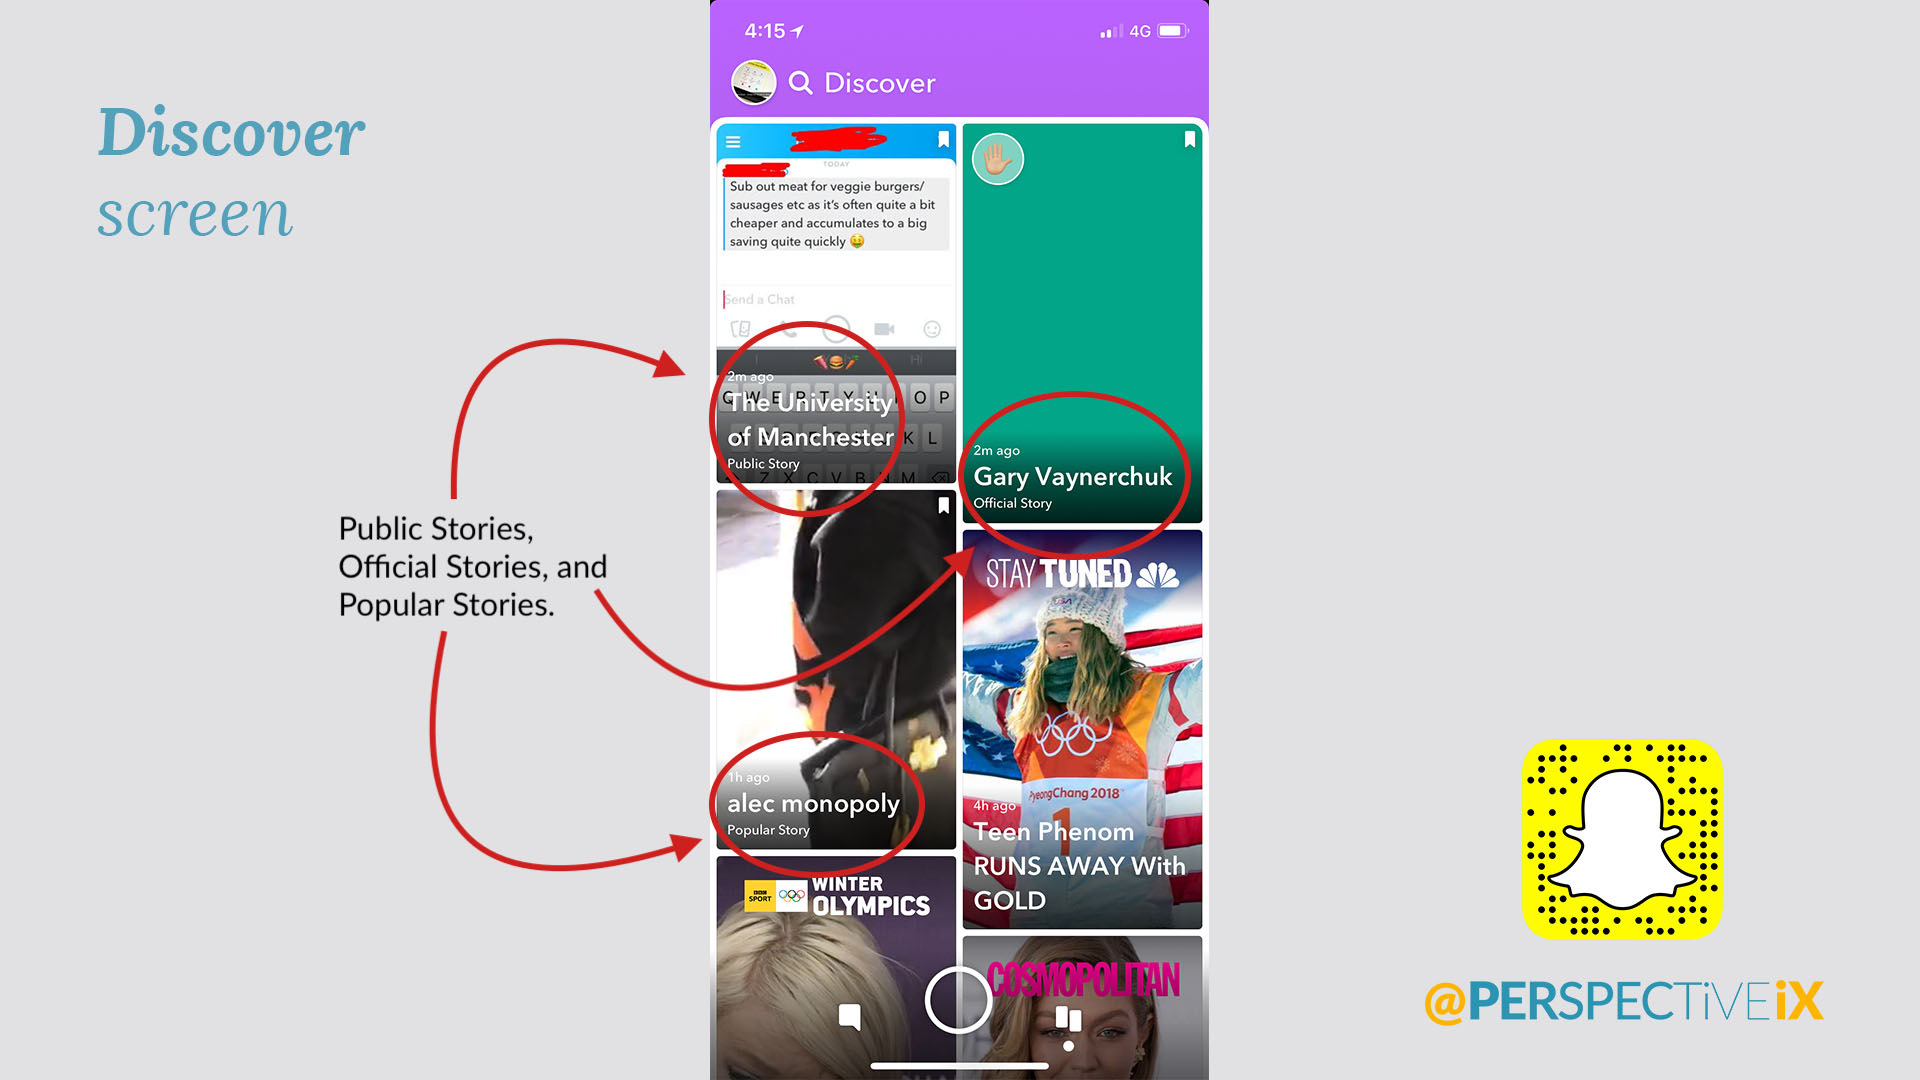 Snapchat Discover Screen - iX Snapchat Guide - Perspective IX